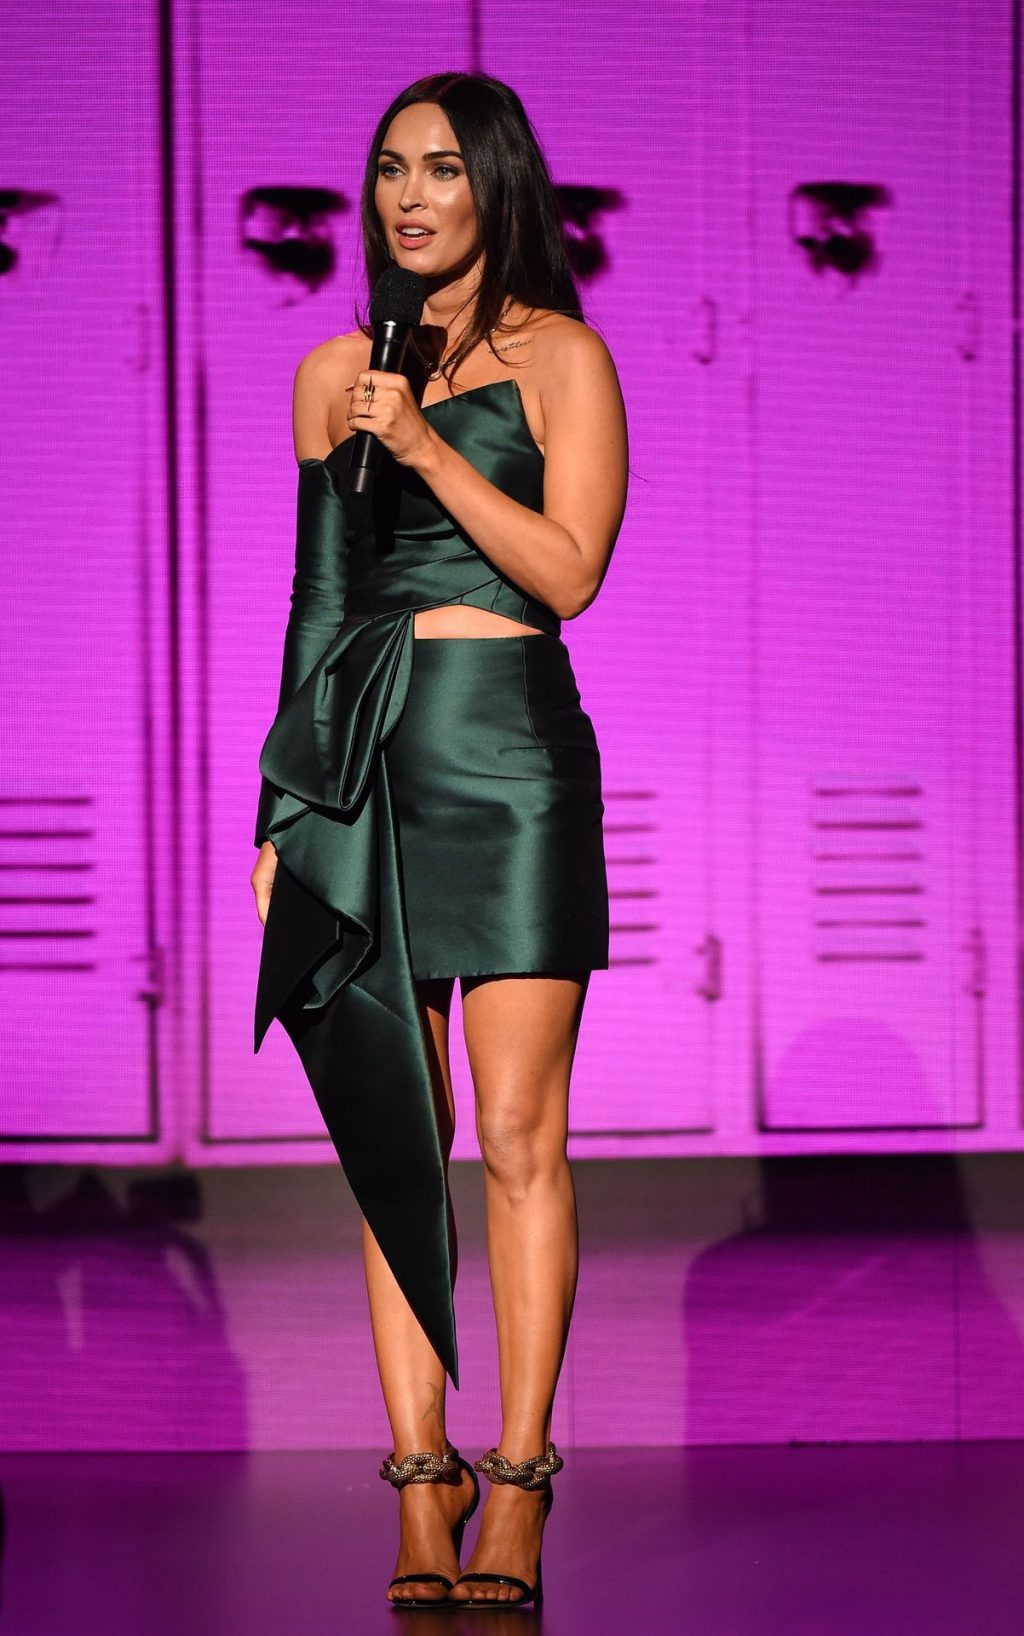 Megan Fox Displays Her Sexy Legs at the American Music Awards (10 Photos)